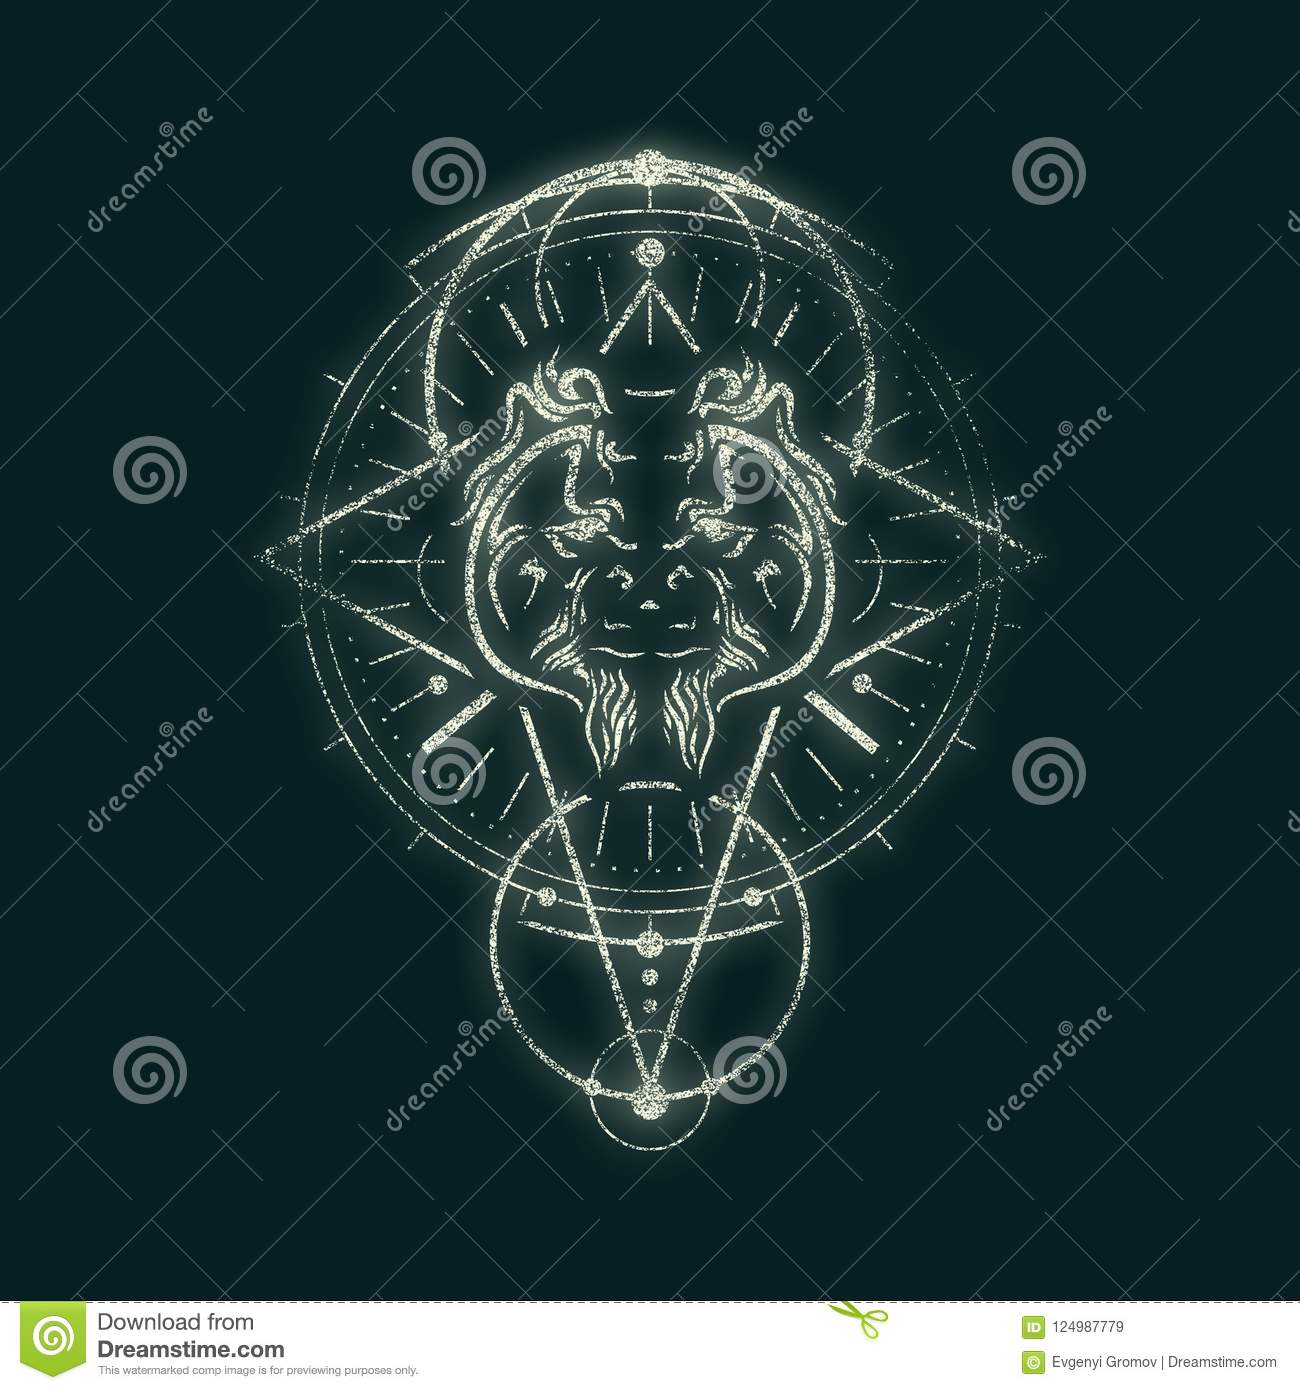 Mystical Occult Symbol Stock Illustration Illustration Of Emblem